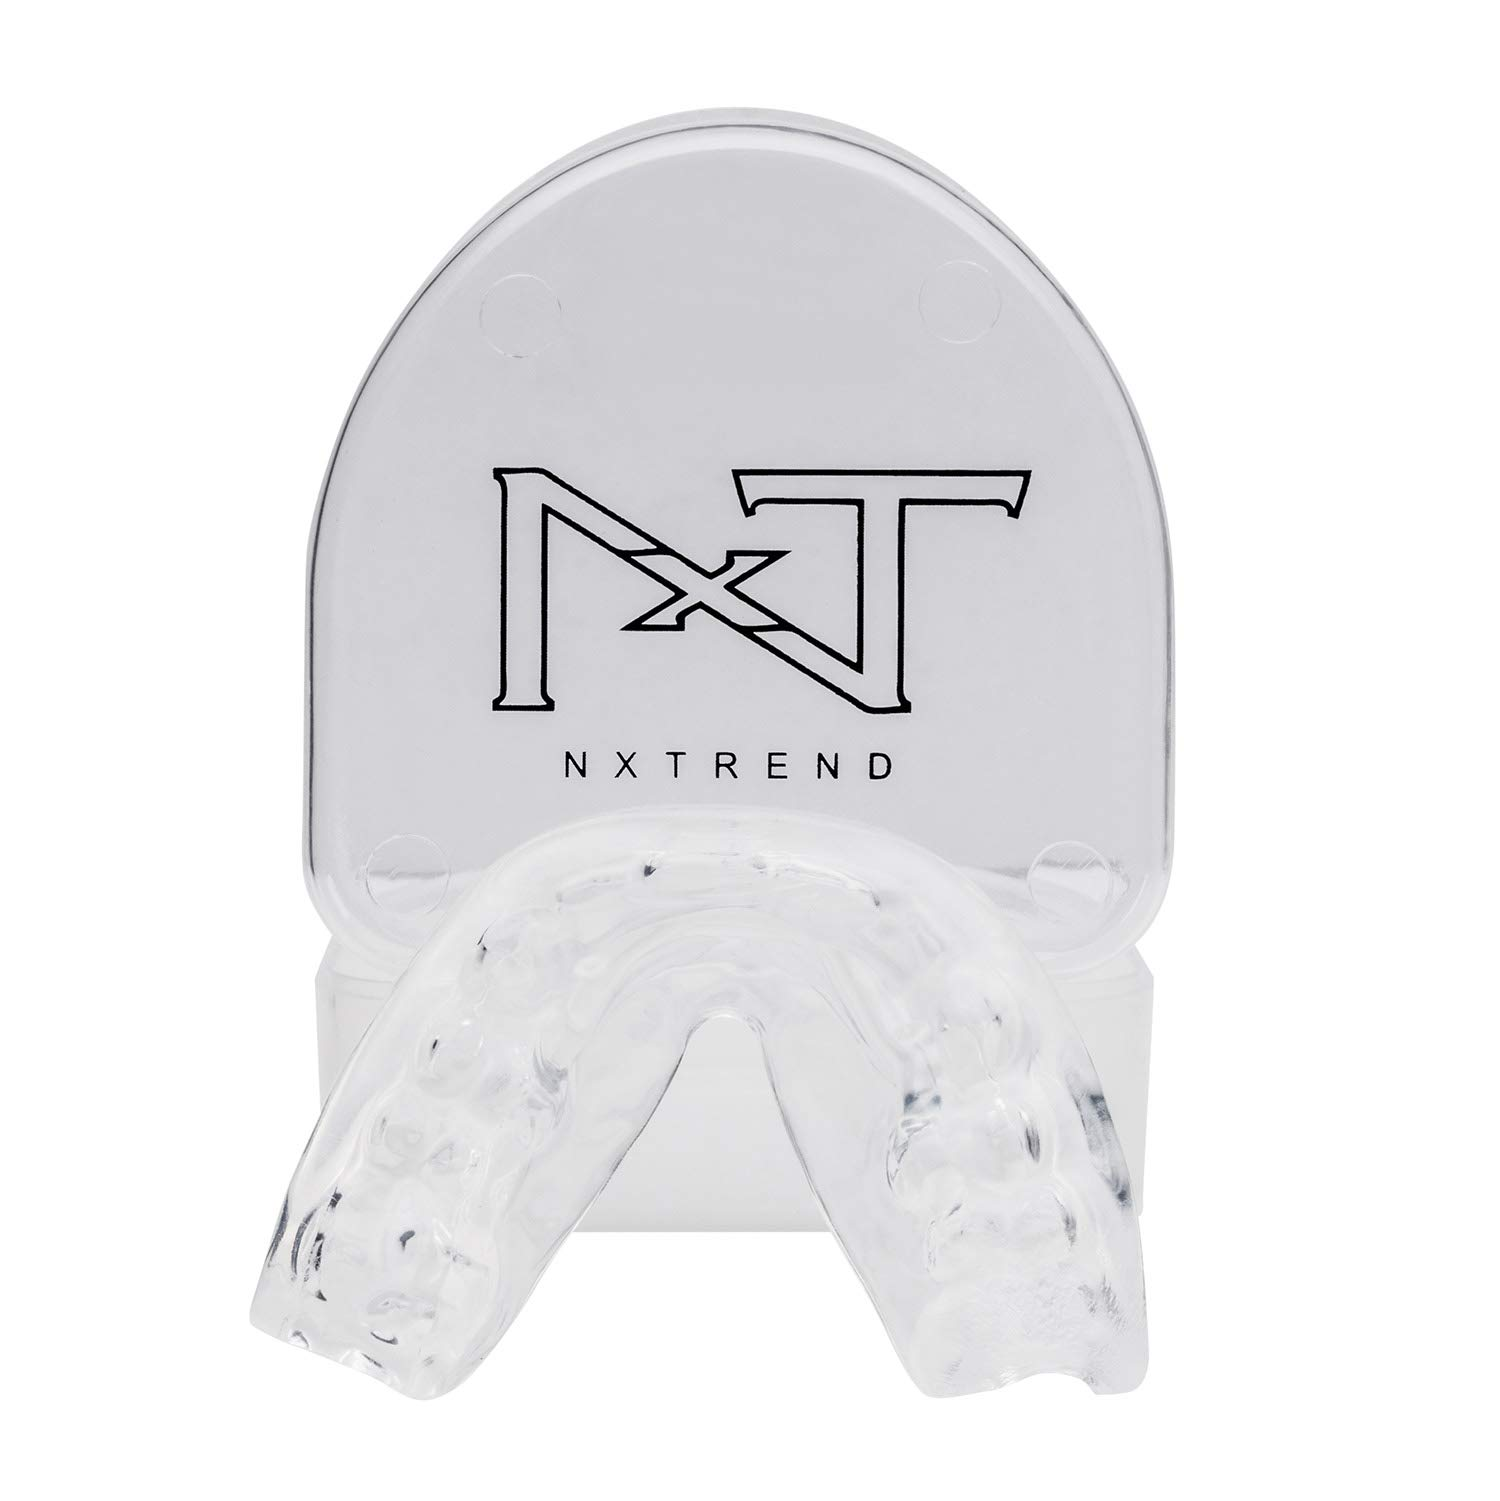 Mouth Guard for Grinding Teeth – Professional Night Guards for Teeth Grinding, Mouth Guard Sports, Dental Sleep Guard Stops TMJ, Bruxism, Teeth Clenching, Anti-Bacterial Case & Earplugs Included by NXTRND USA (Image #8)